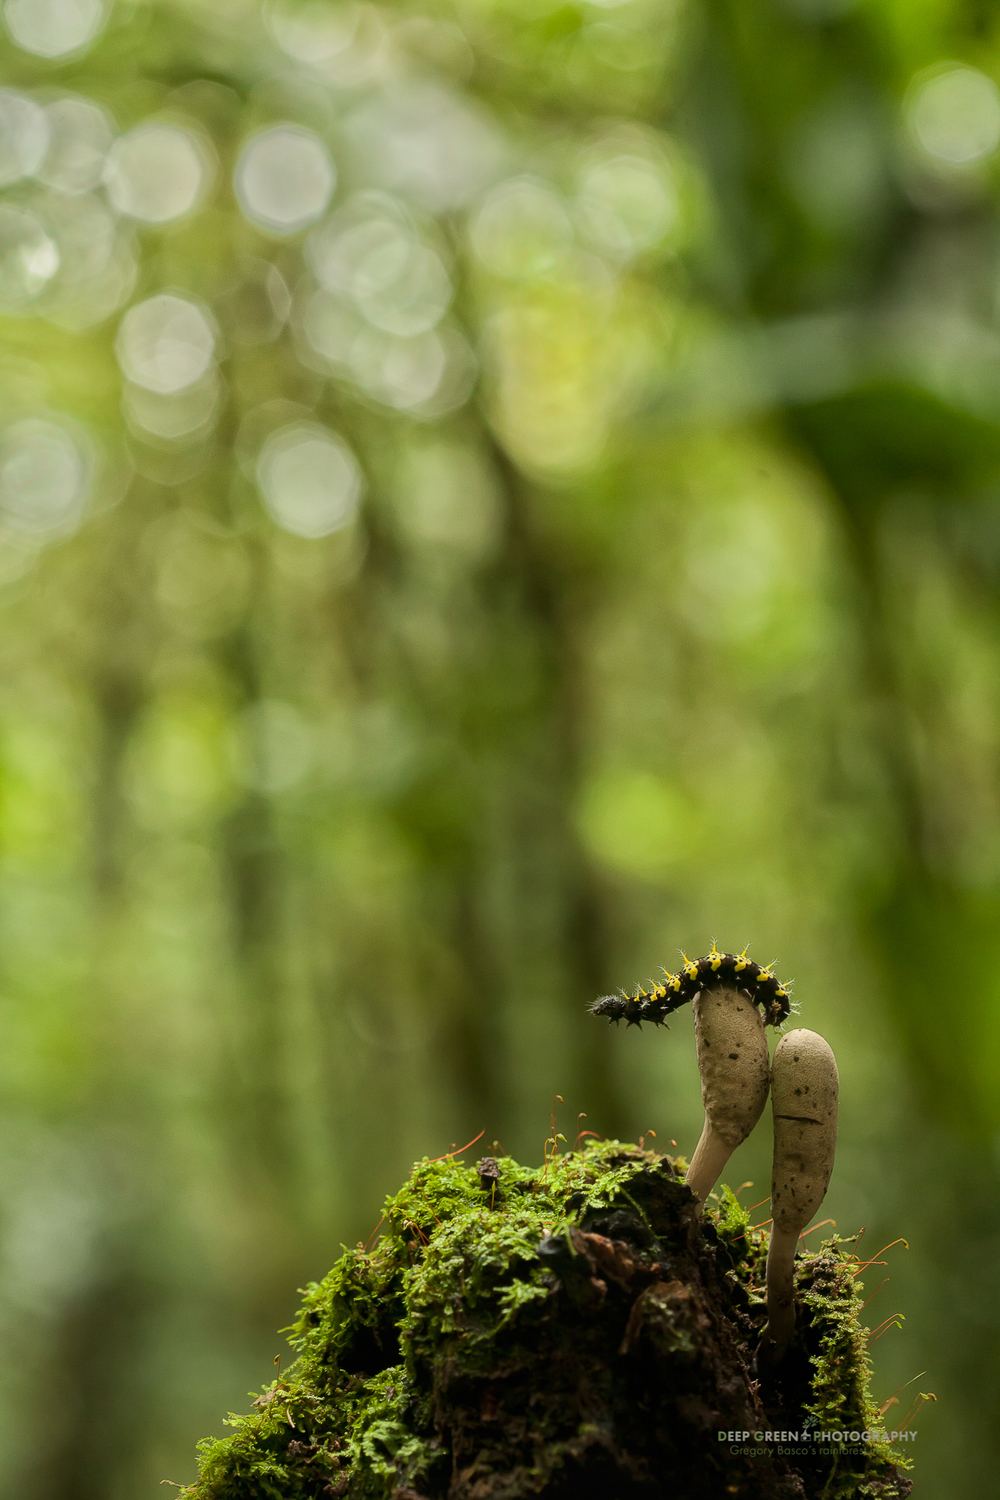 I took this image of a caterpillar while lying on my belly on the floor of a cloud forest. I used a full-frame camera body and my 100 mm macro lens to shoot up at the caterpillar and the mushrooms to give a sense of the towering cloud forest that is home to this little creature. A diffused flash held off-camera in my left hand helped to add a bit of fill and dimension to the subject.